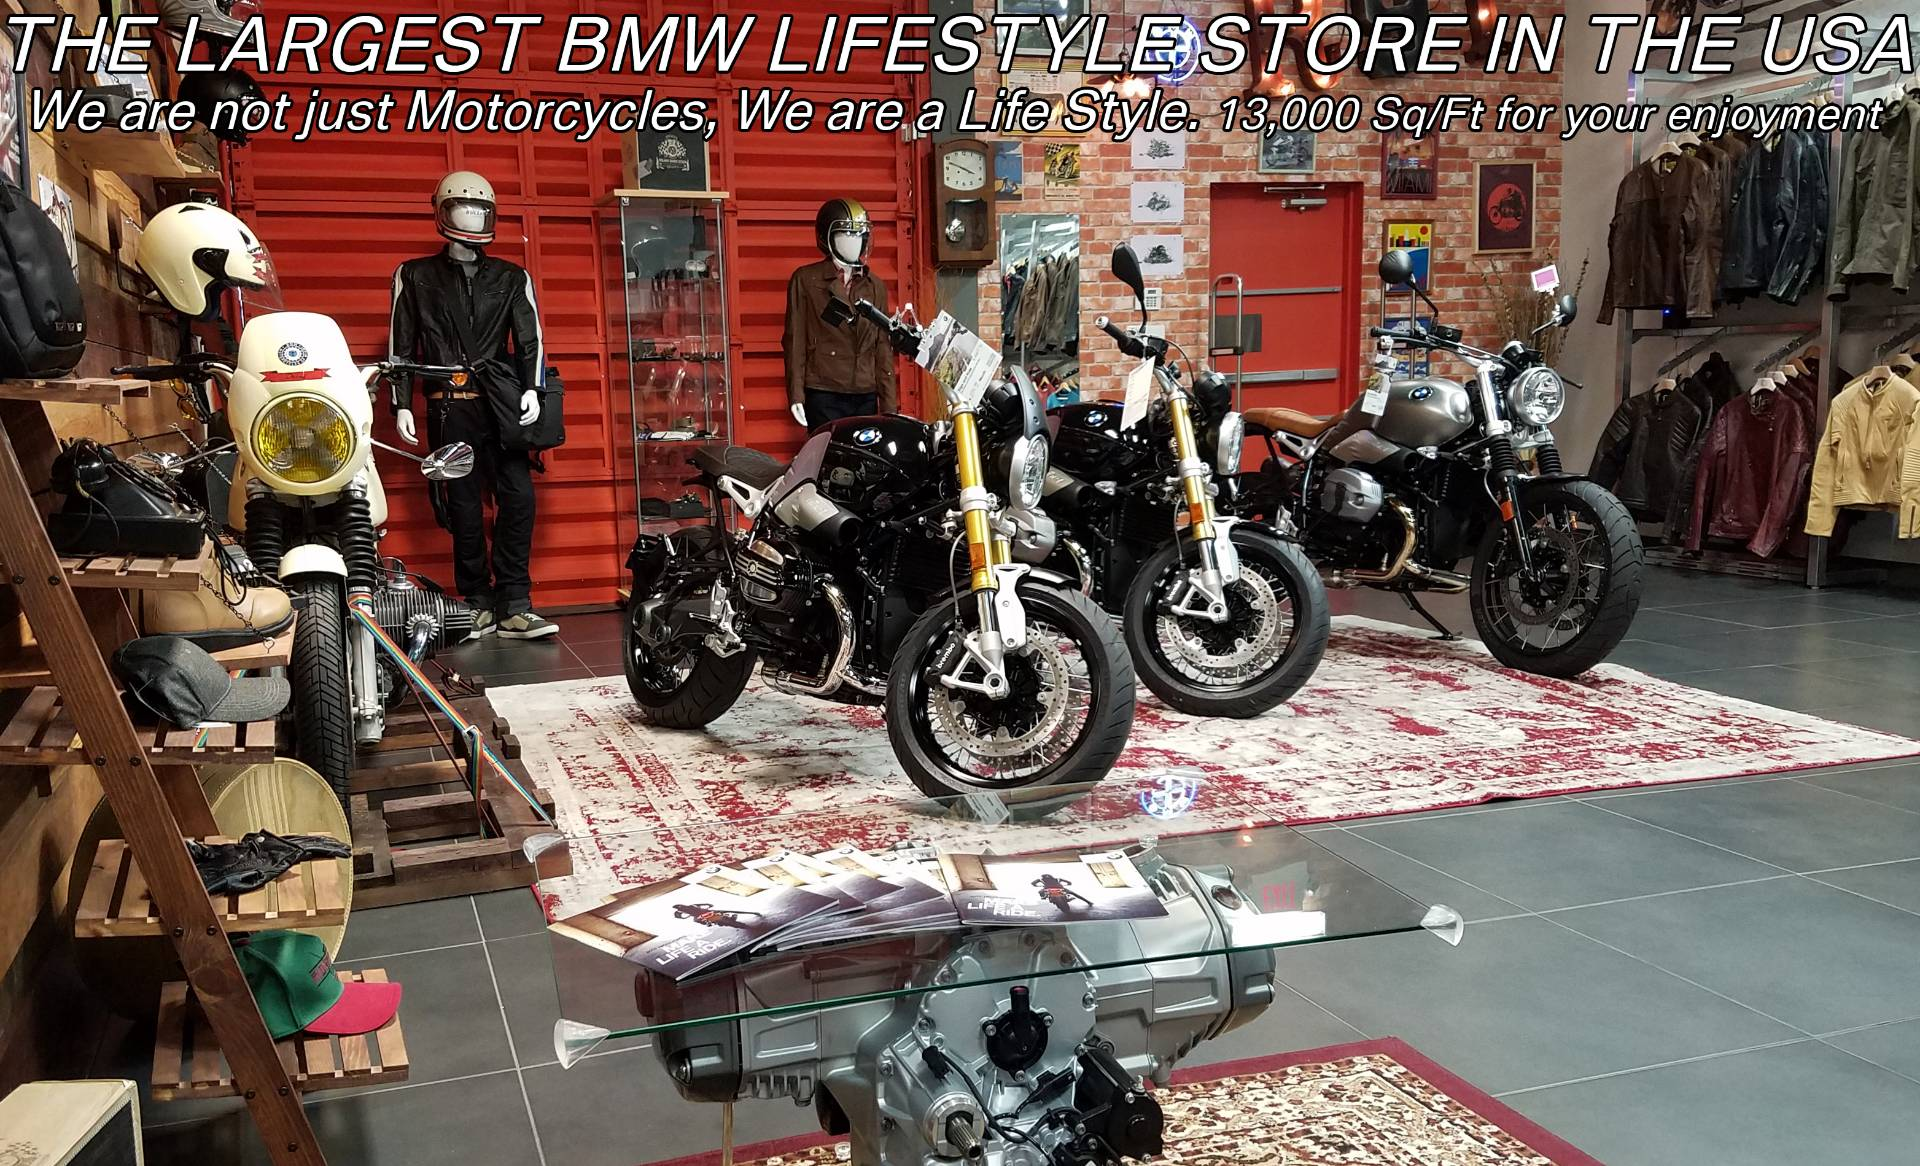 New 2019 BMW R 1250 GSA for sale, BMW for sale R 1250GSA, BMW Motorcycle R1250GSA, new BMW 1250GS Adventure, R1250GSAdventure, BMW Adventure, BMW Motorcycles of Miami, Motorcycles of Miami - Photo 41